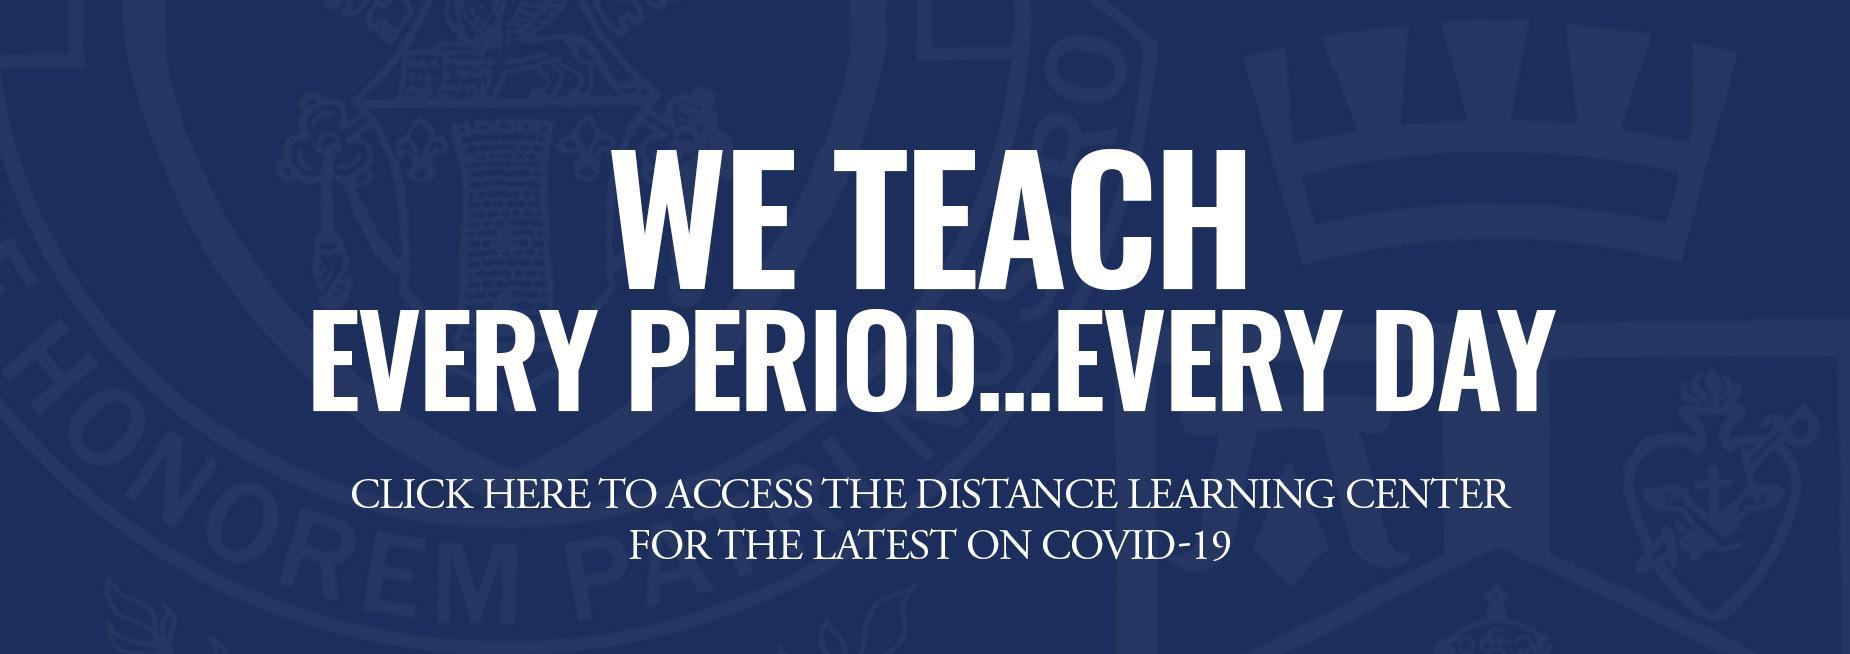 Distance Learning Center Banner